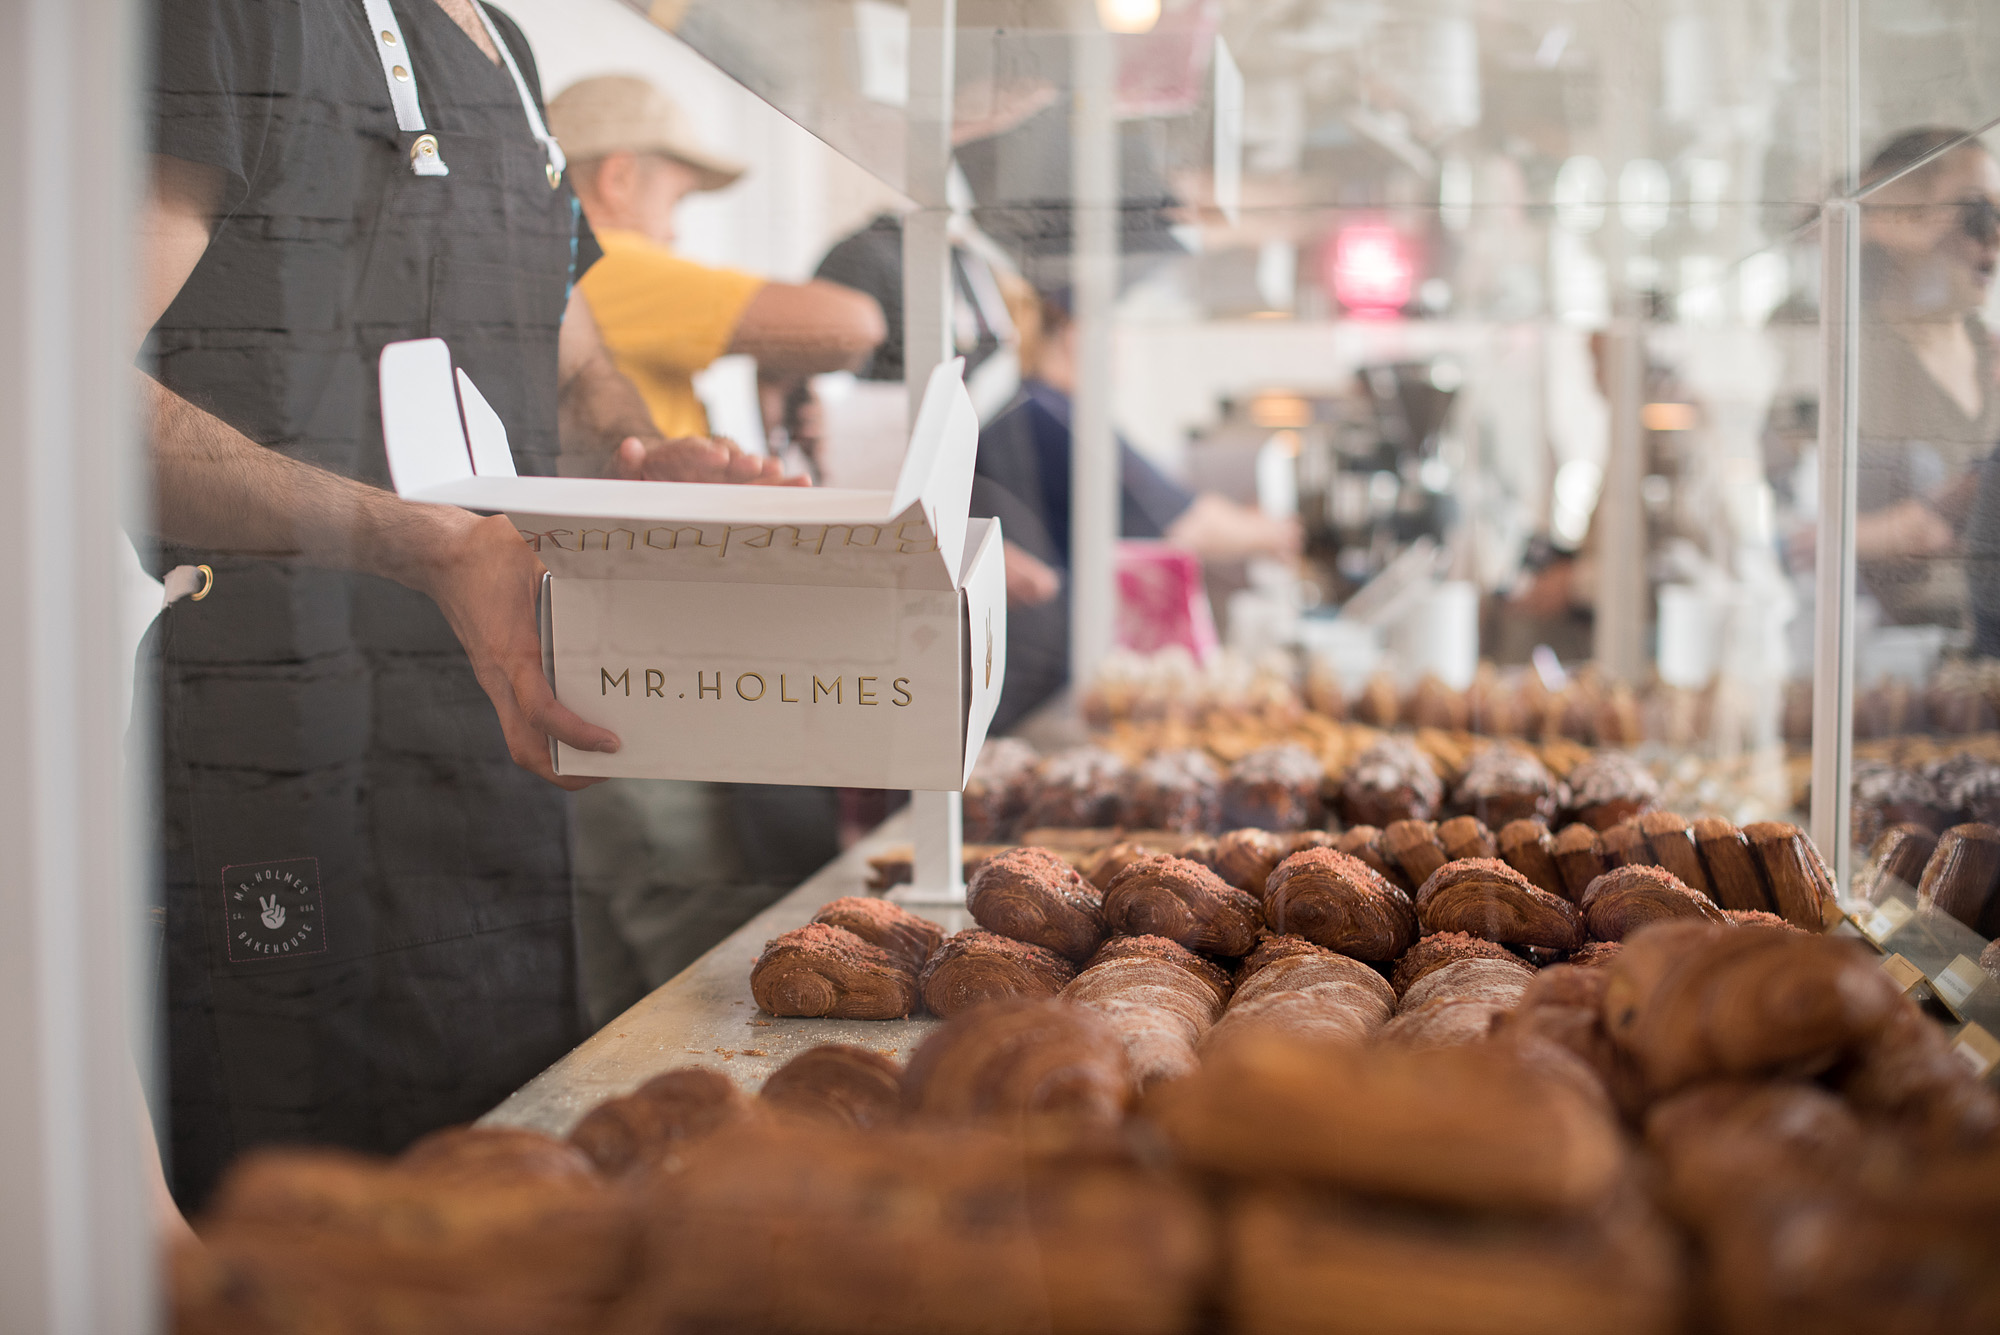 Breads, Cakes, and Pastries in Los Angeles: Where to Find the Best - Eater LA